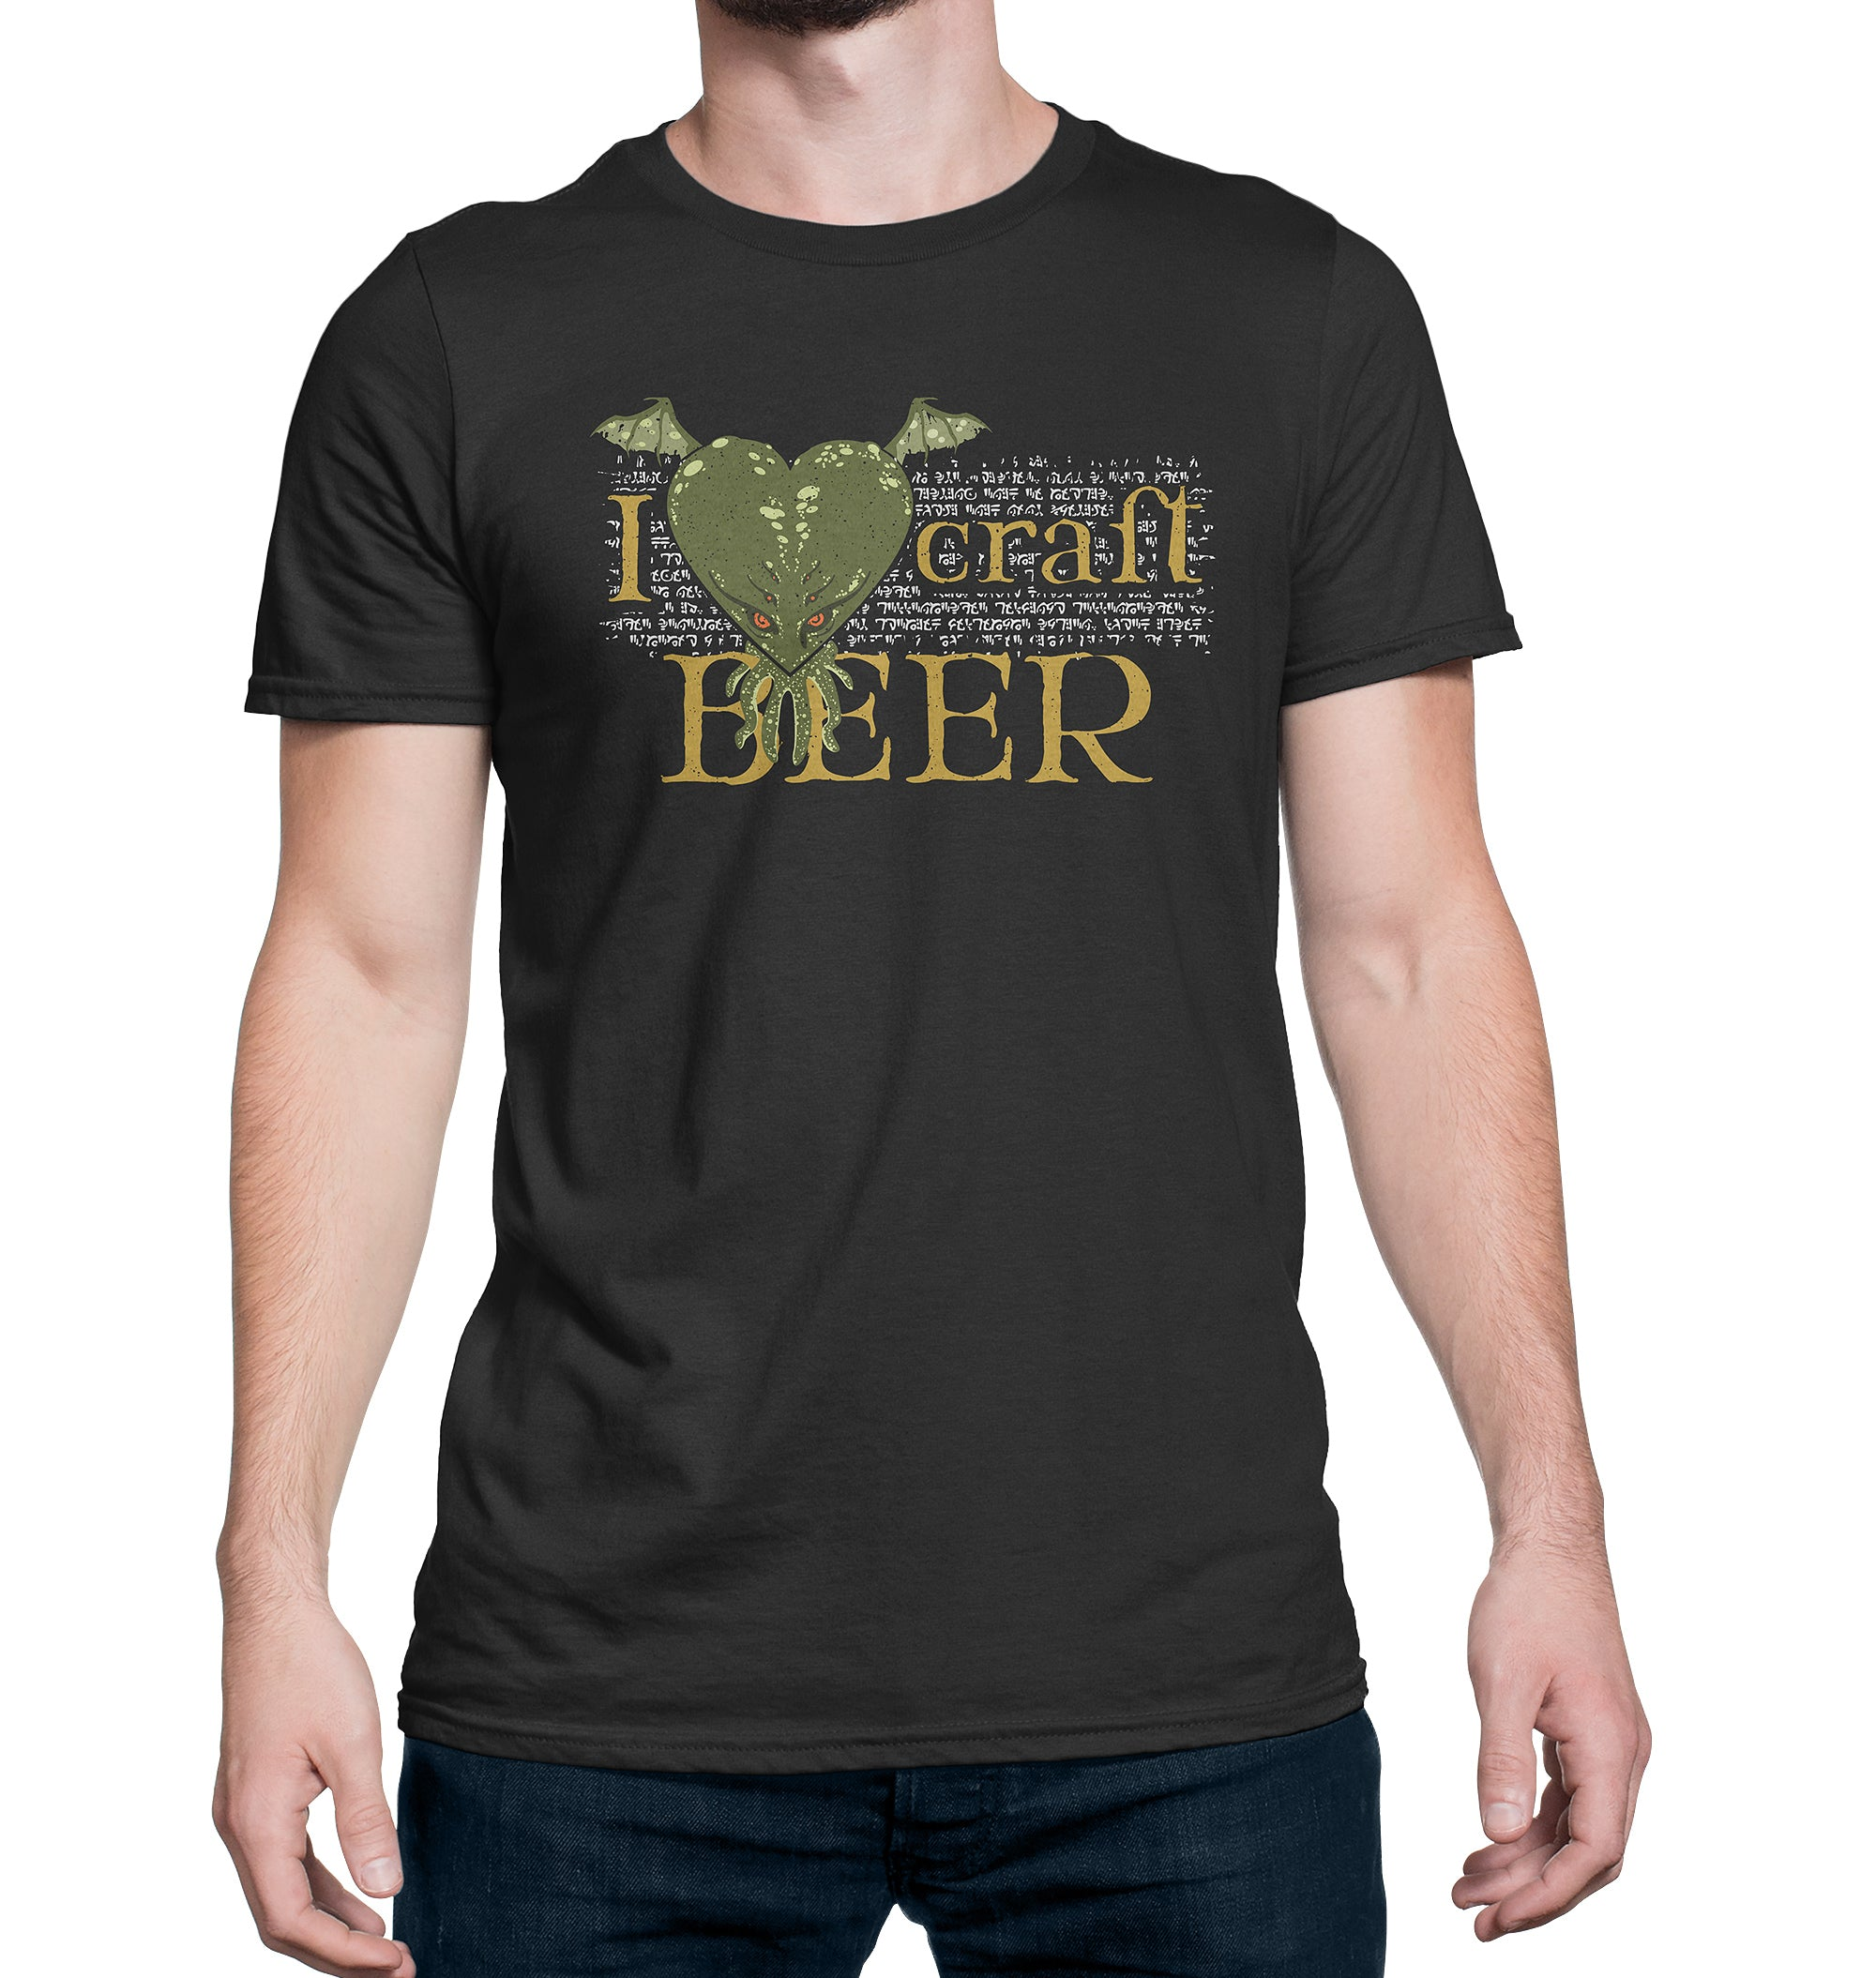 I LoveCRAFT Beer T-Shirt on Model